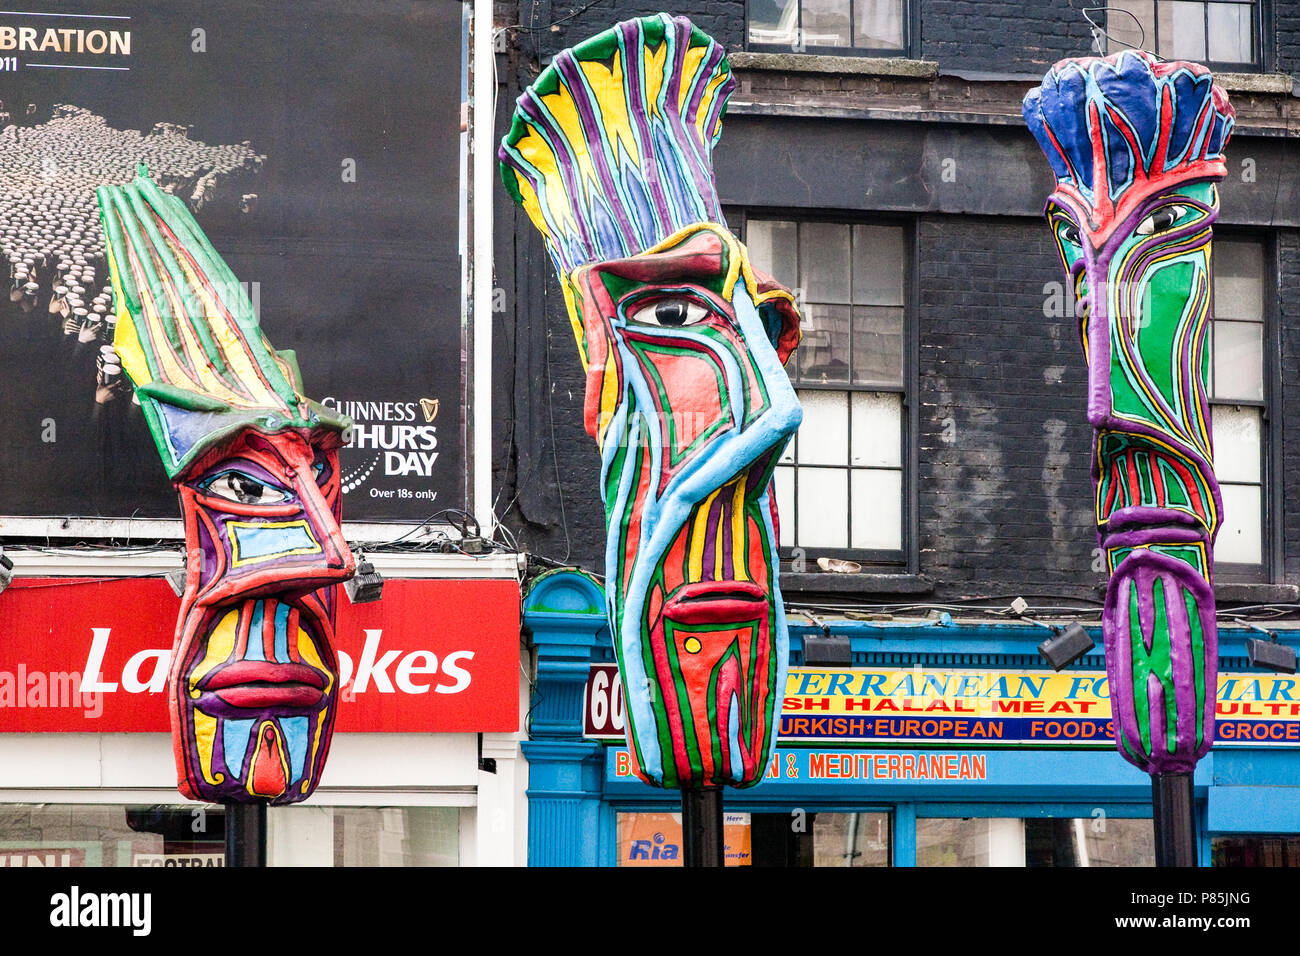 Colourfully decorated sculptured heads in a street in Dublin, Ireland, Europe. Stock Photo